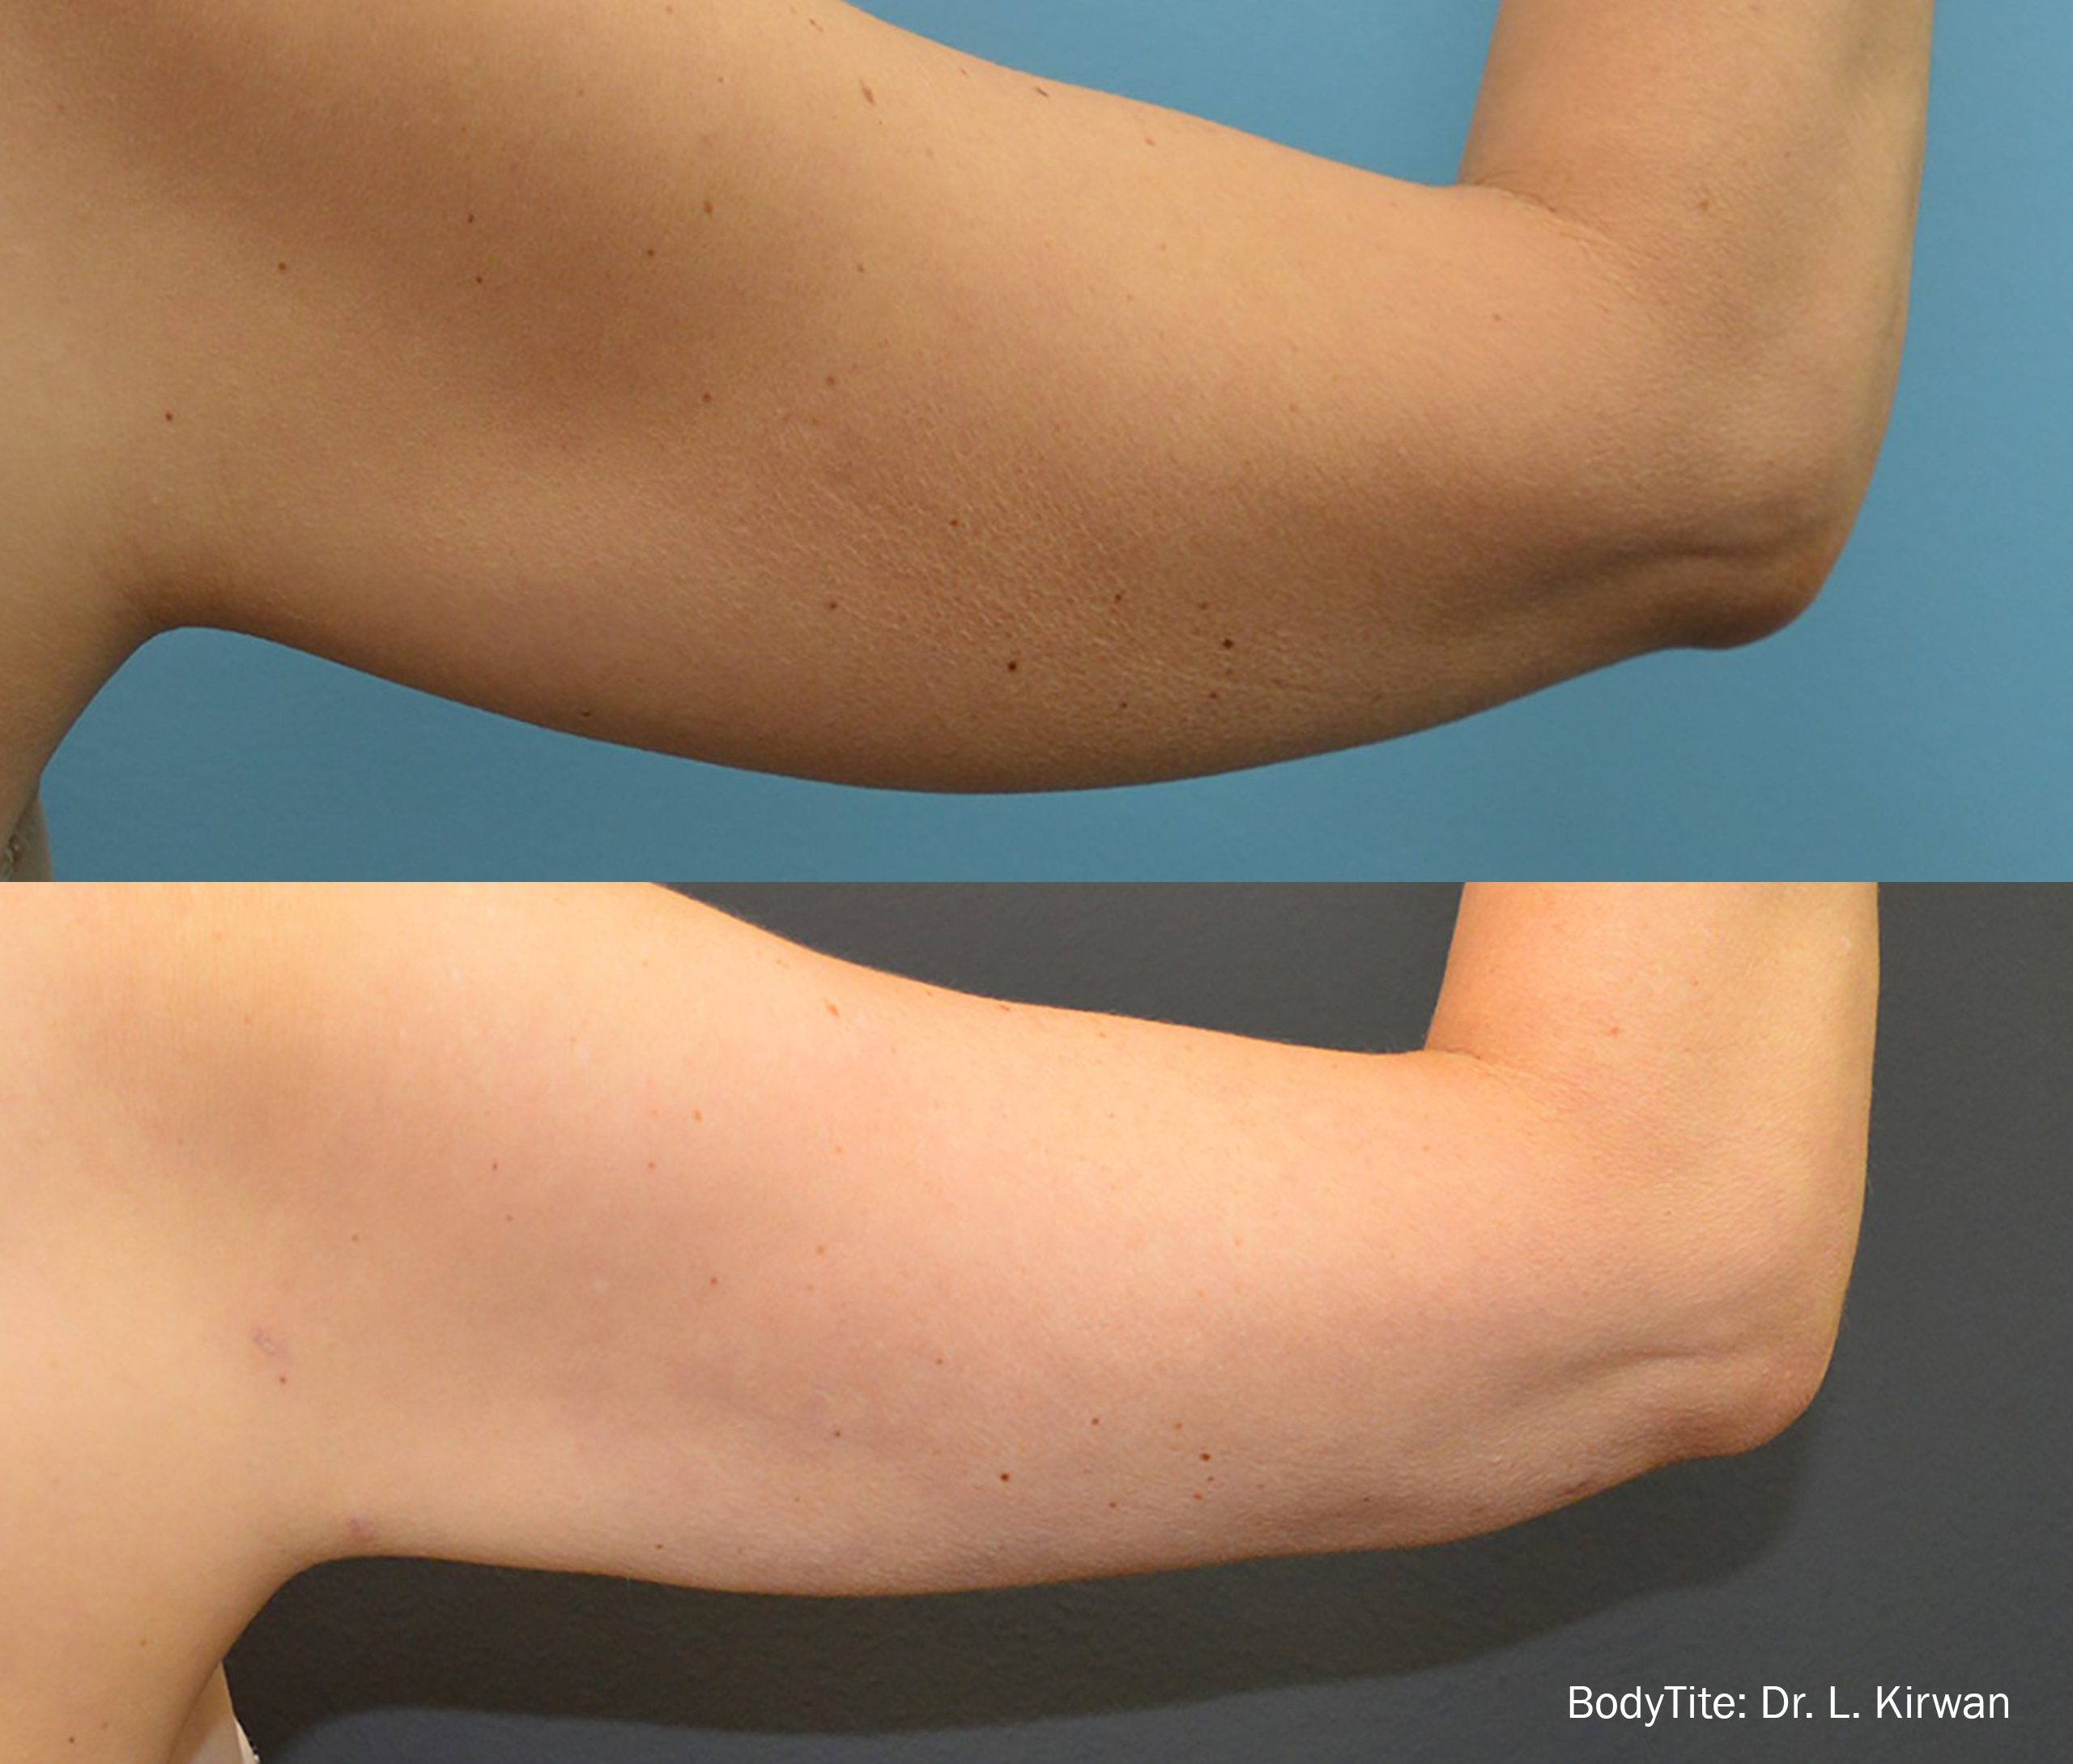 49-year-old BodyTite to arms